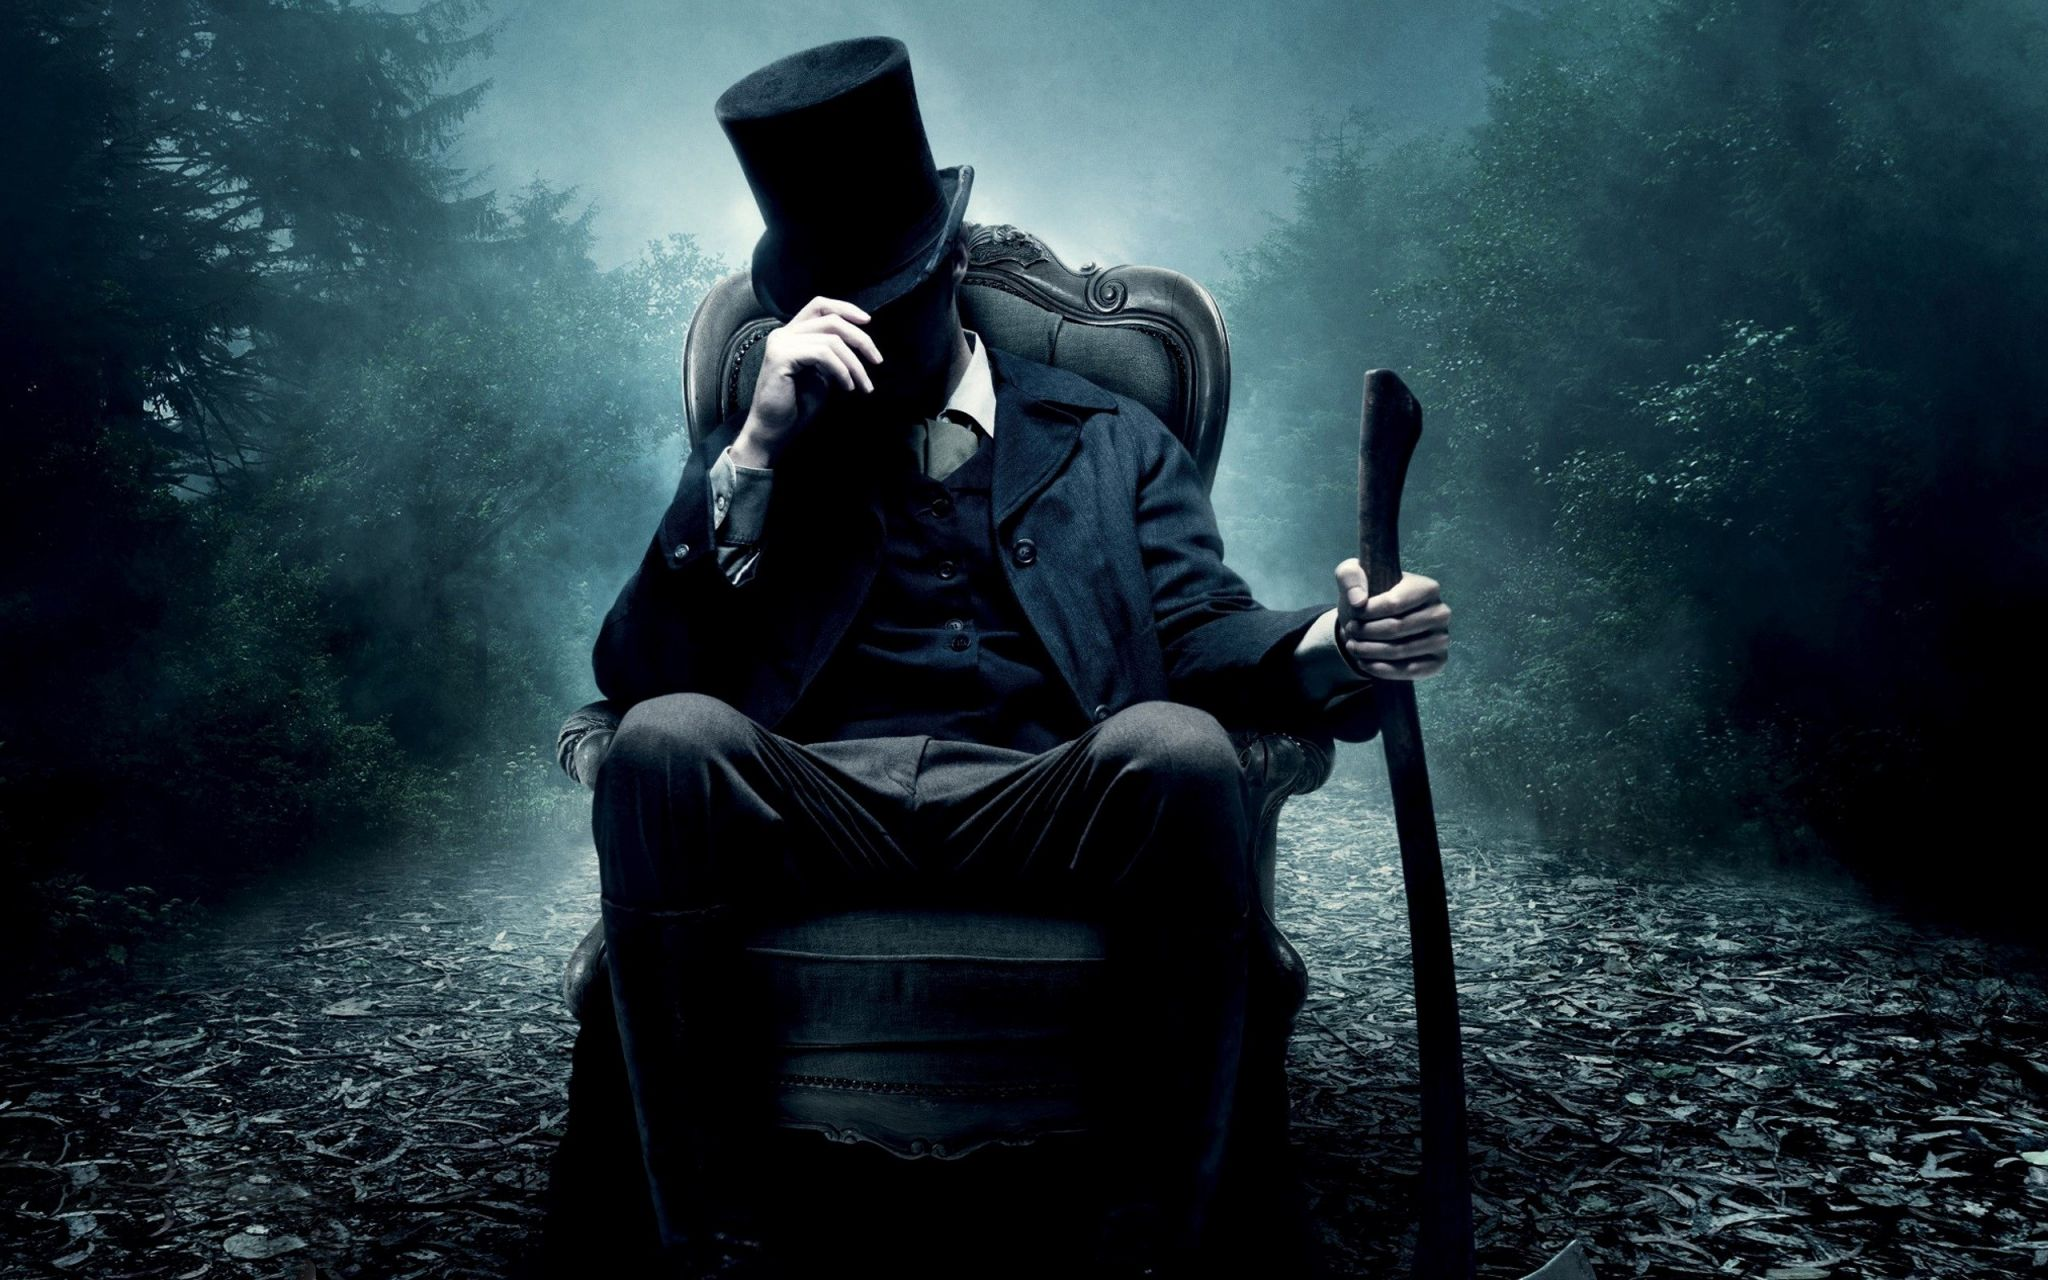 Vampire Hd Wallpapers 1080p High Quality Abraham Lincoln Vampire Abraham Lincoln Vampire Hunter Vampire Hunter